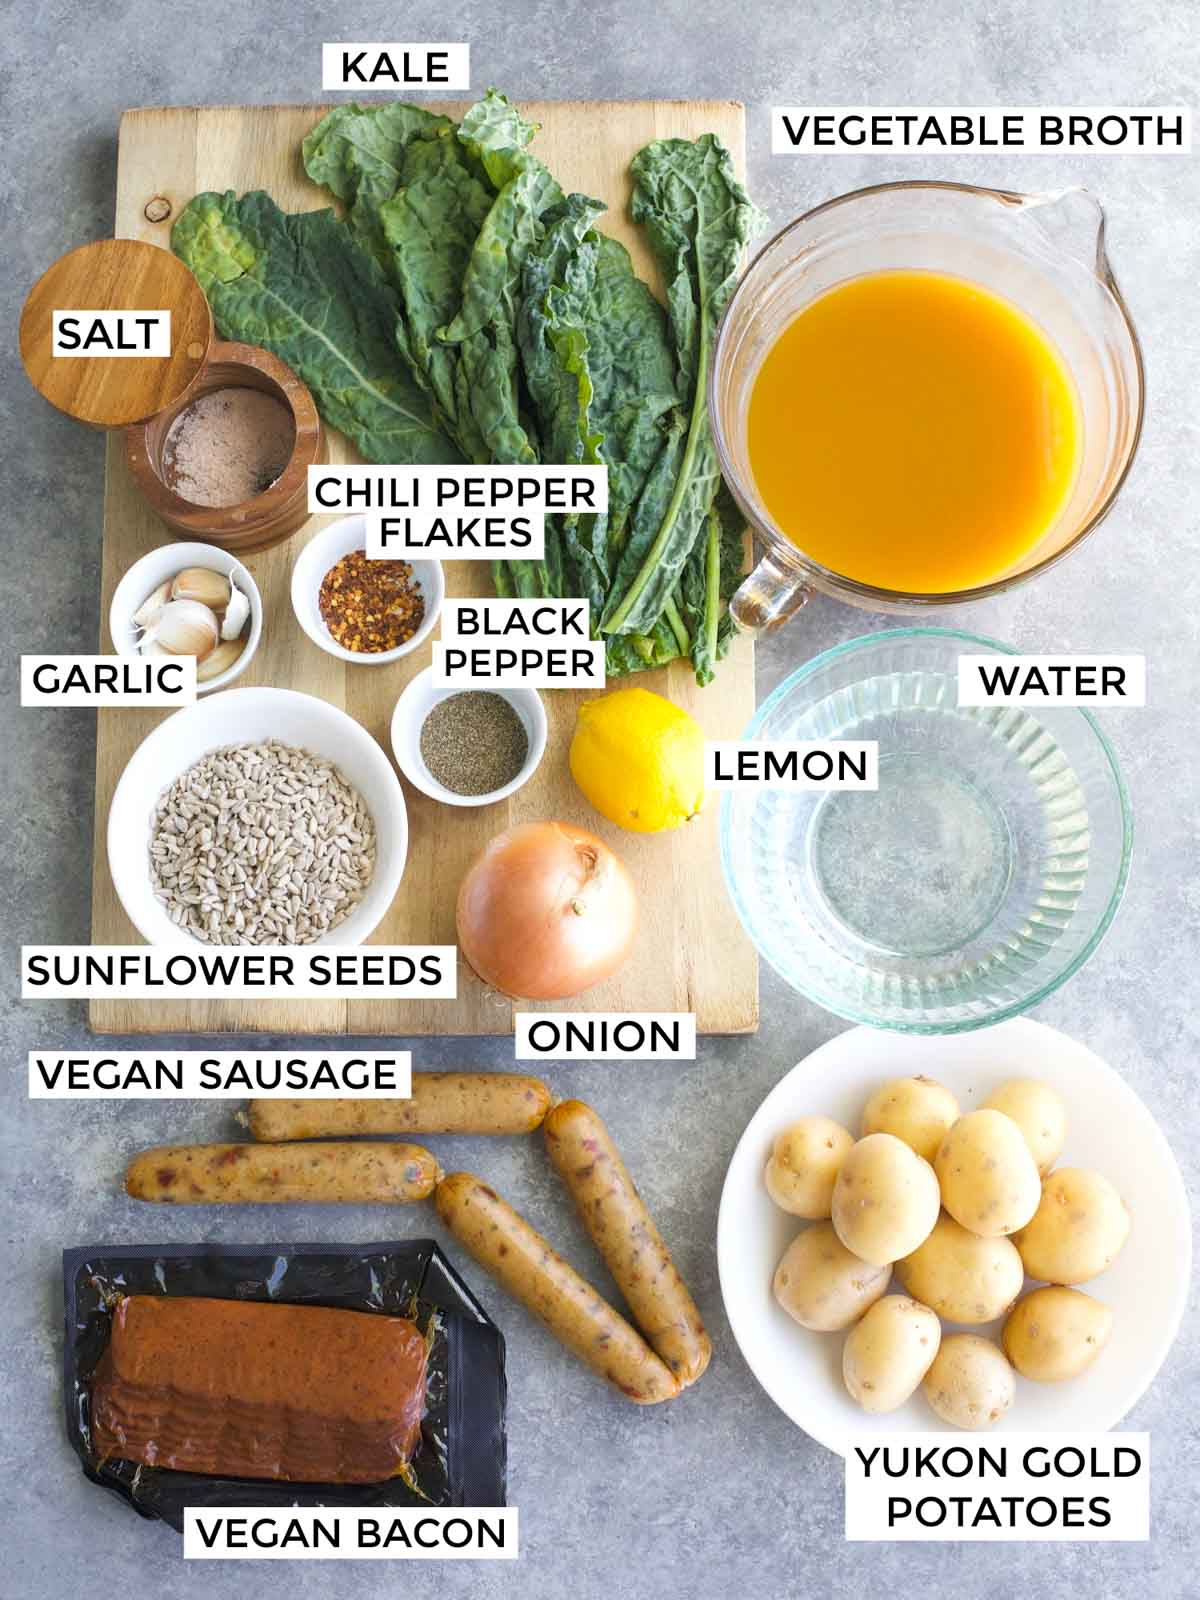 All of the ingredients needed to make the recipe are labeled and laid out on a gray background.